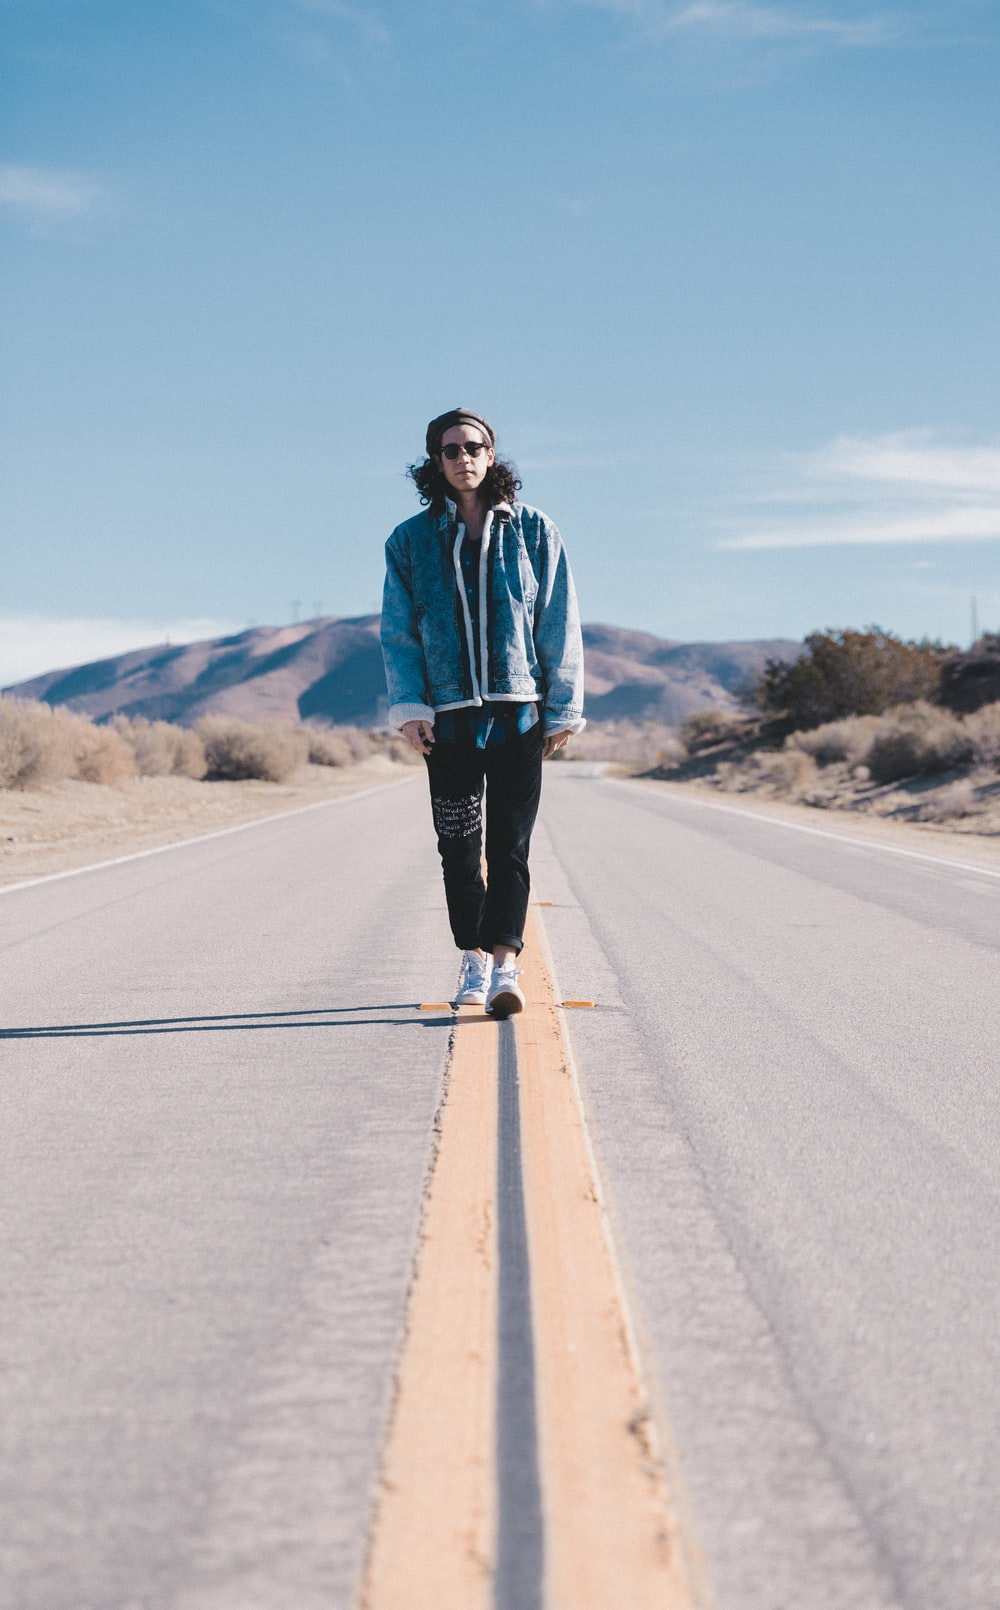 man walking in the middle on road at daylight